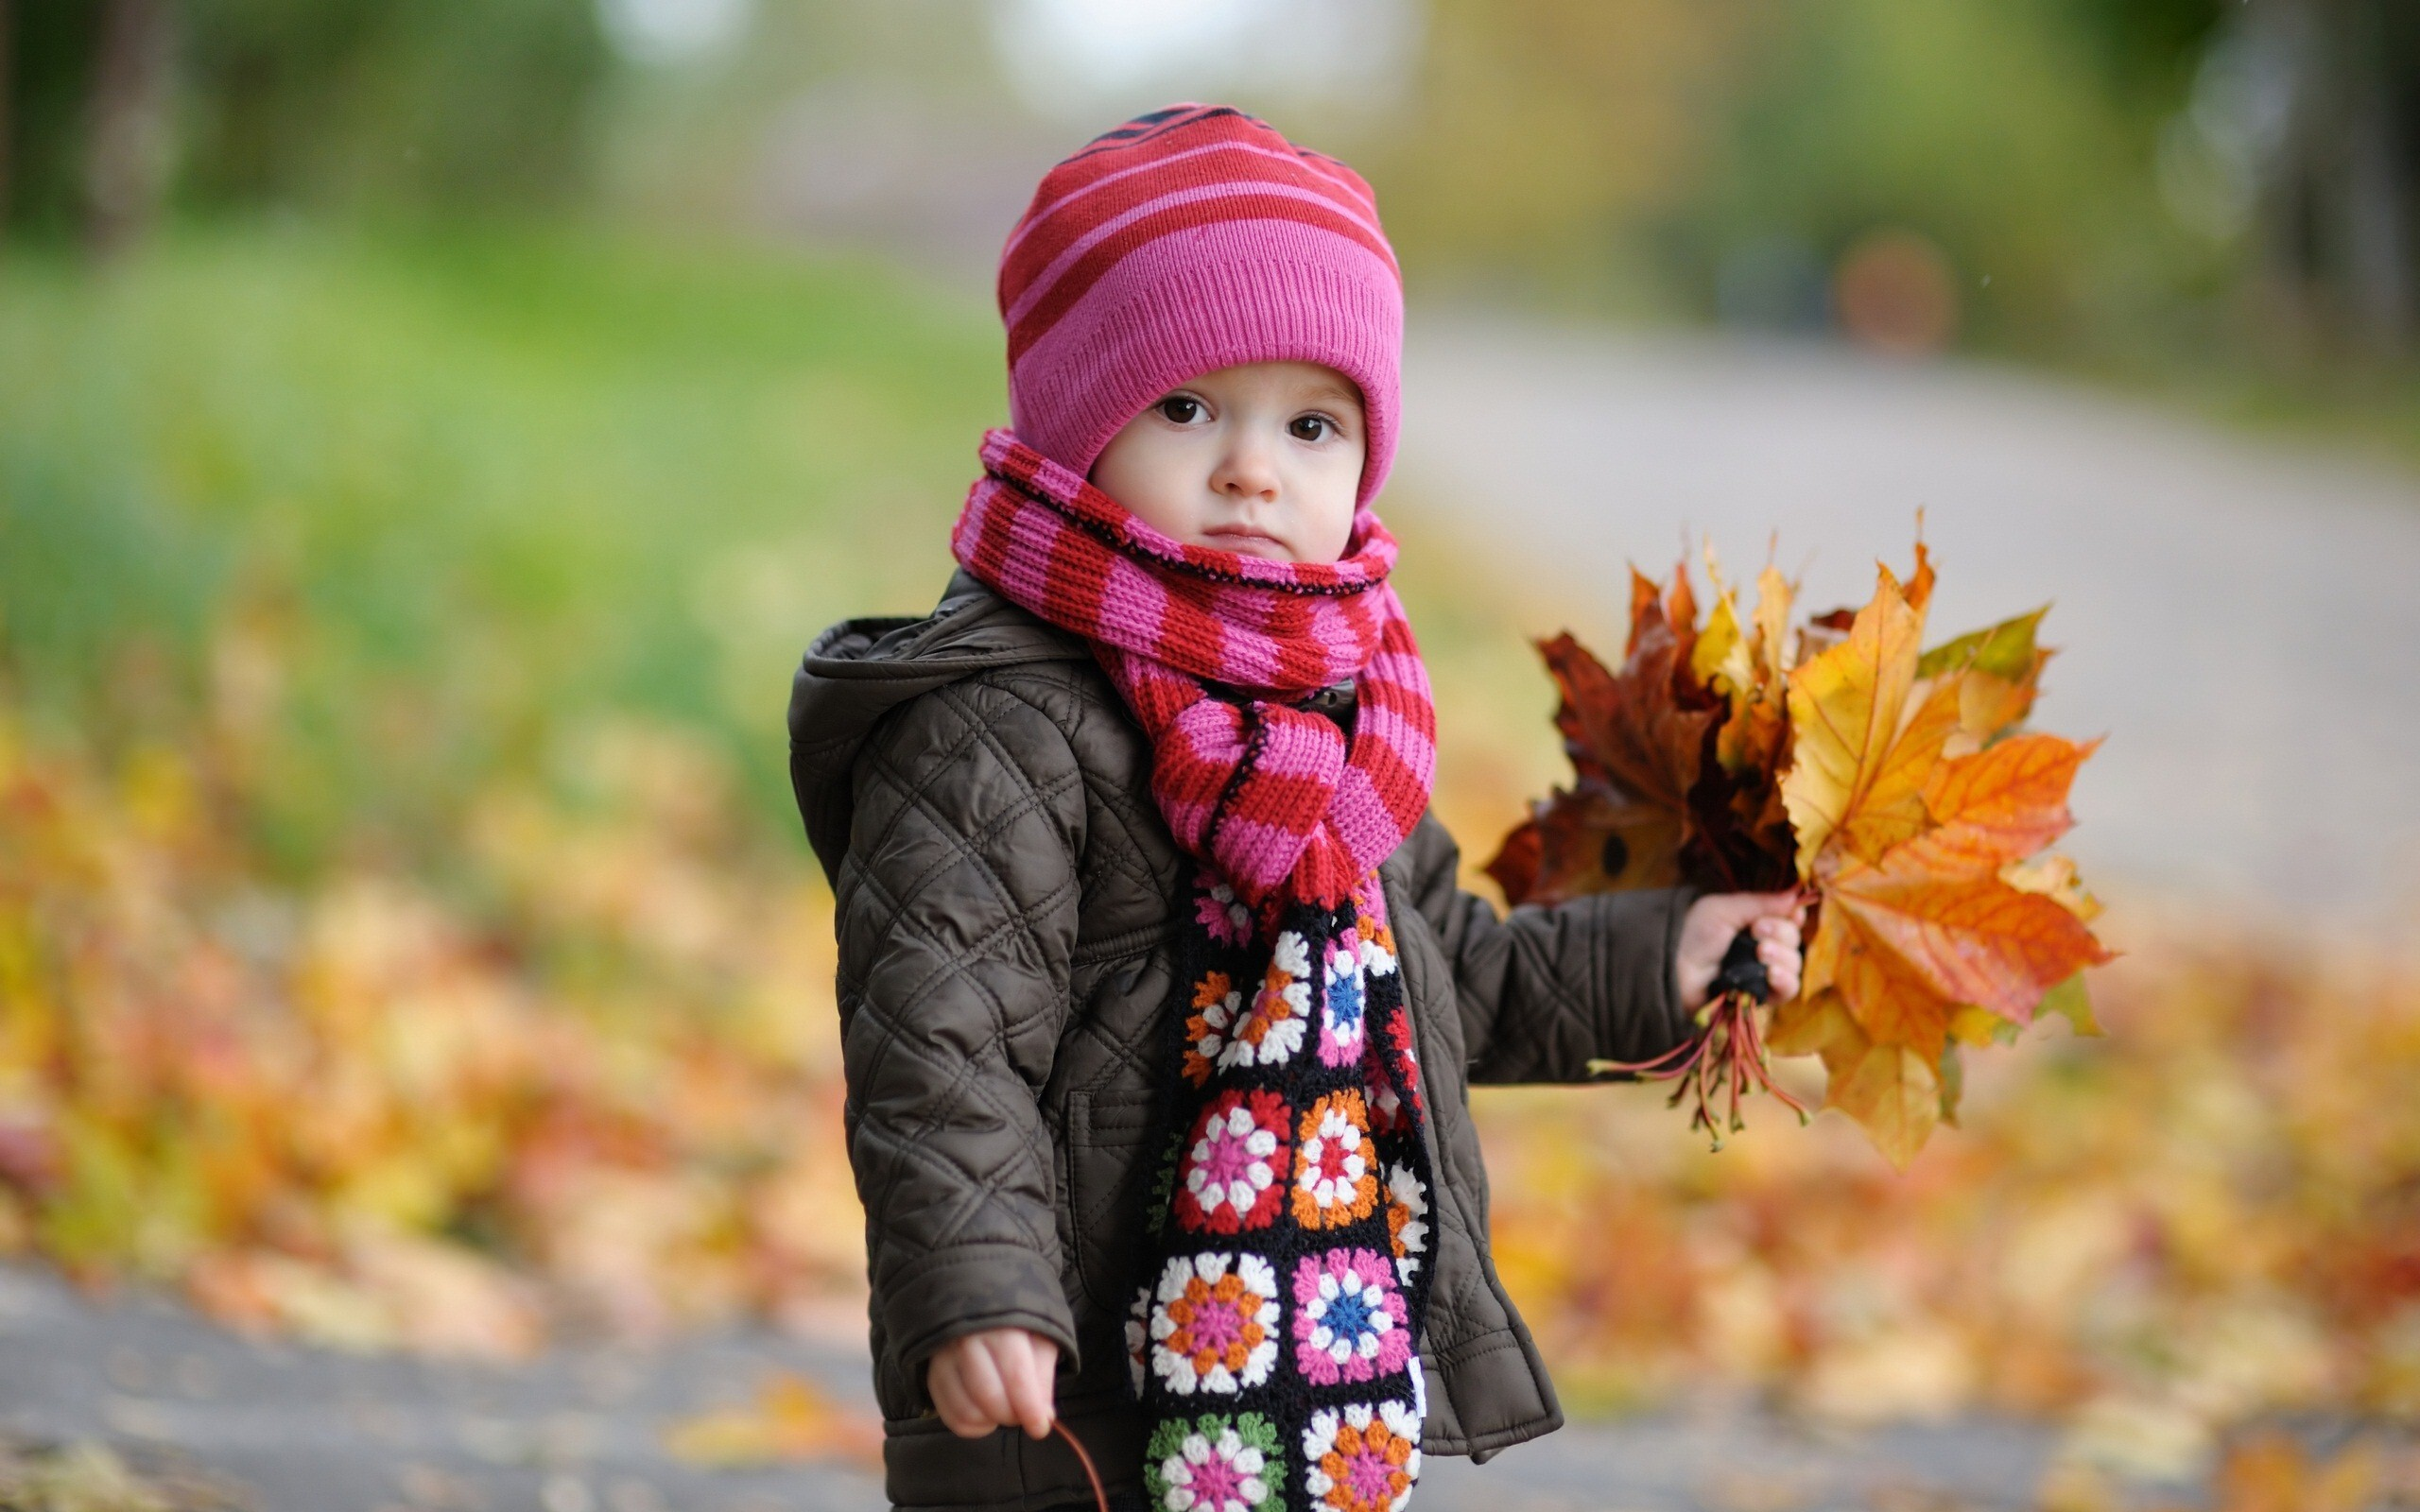 beautiful baby girl in autumn | hd wallpapers